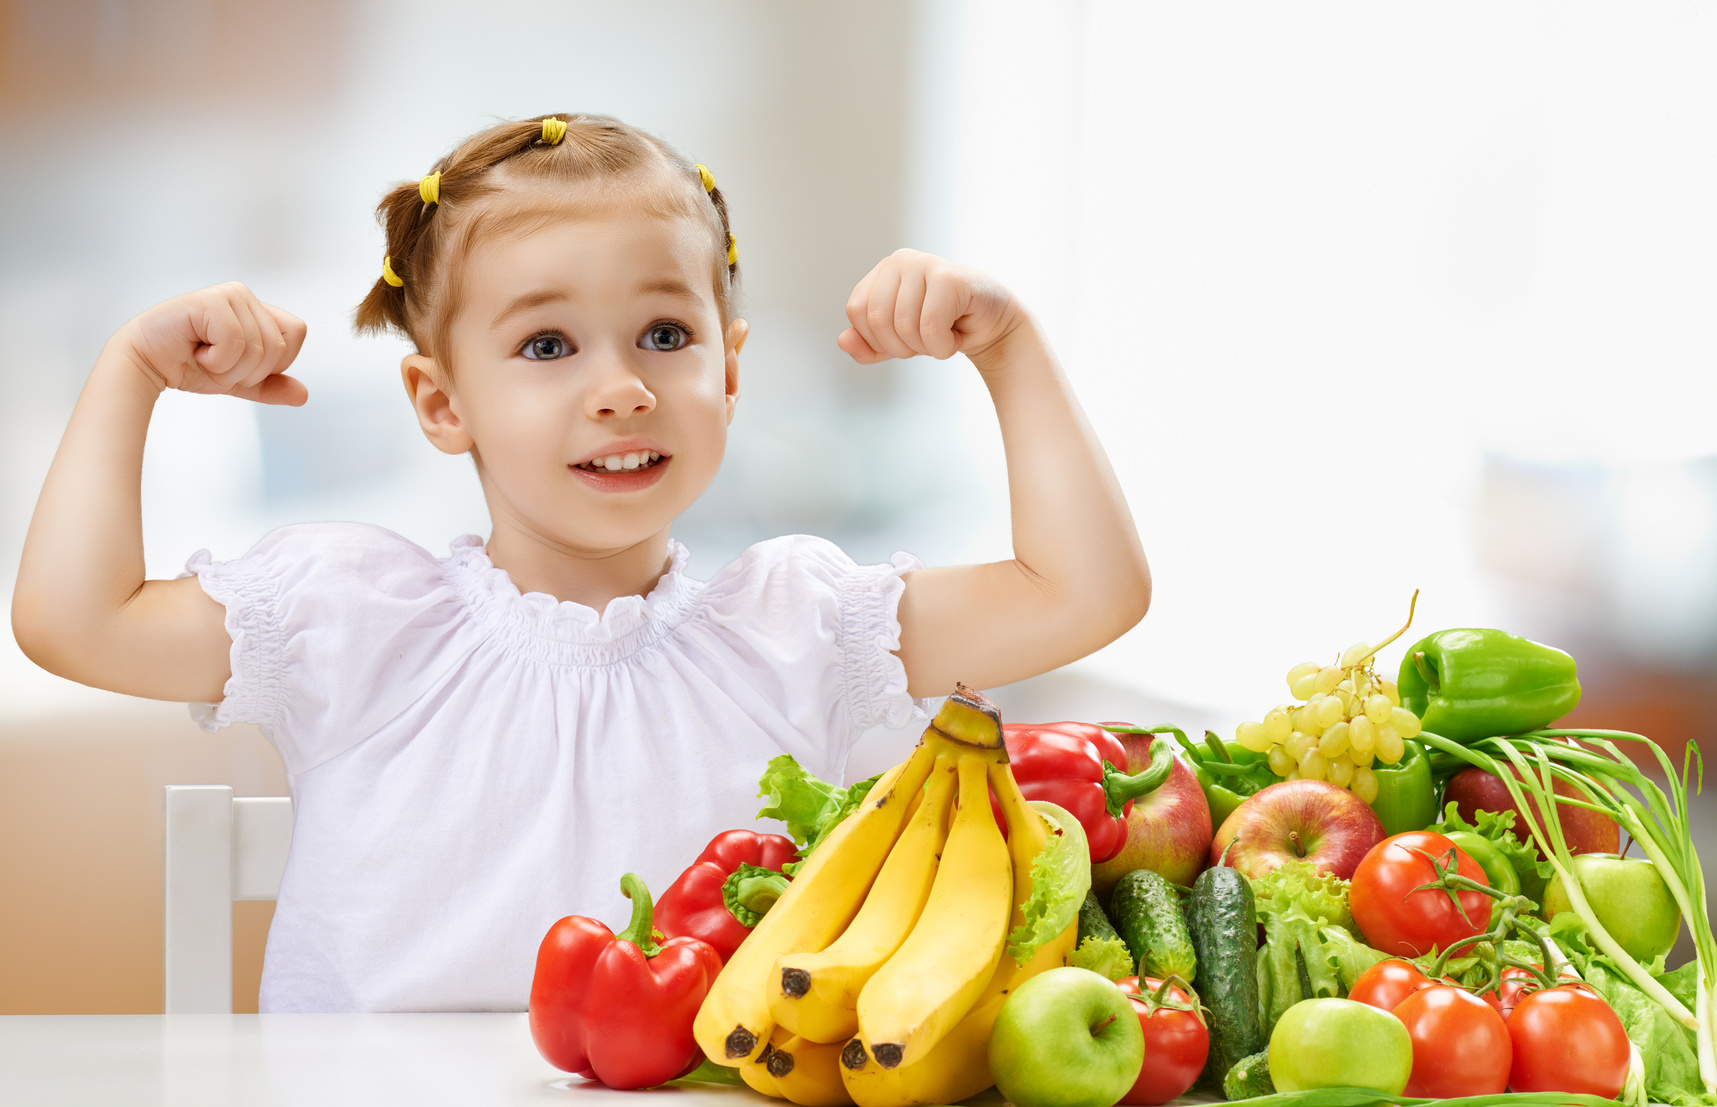 The Importance Of Proper Nutrition For Your Child